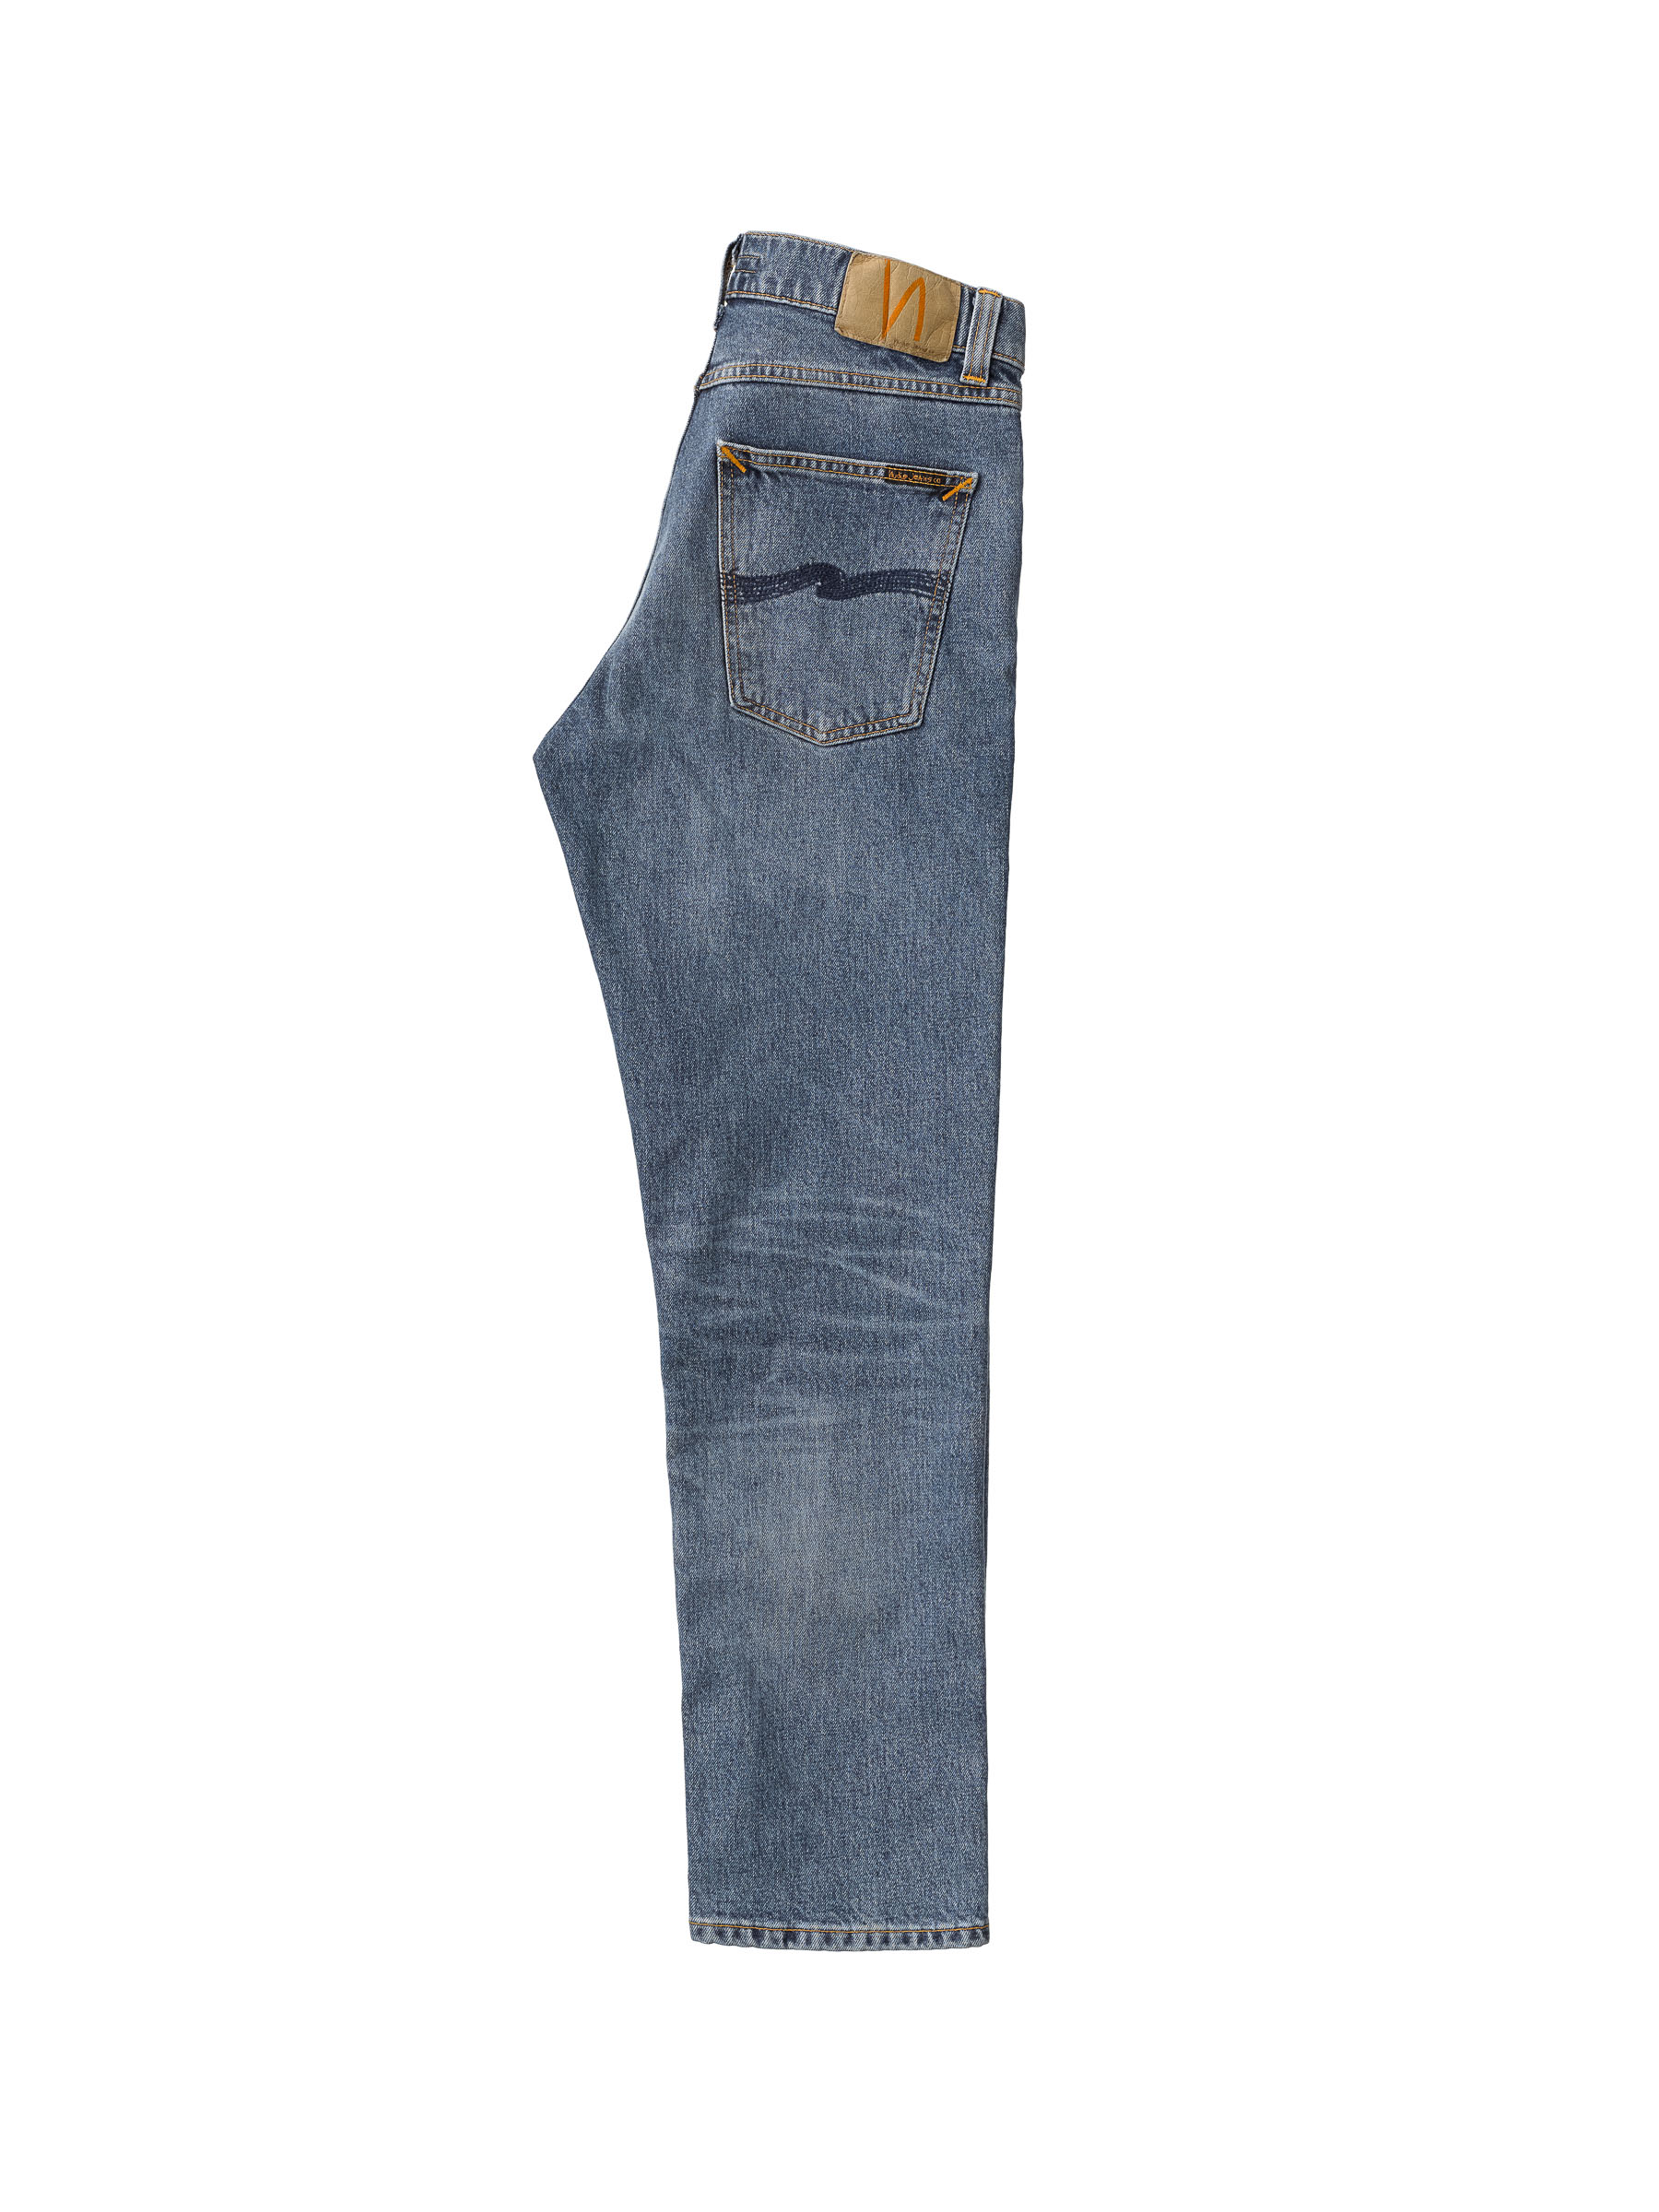 Nudie Jeans - GRITTY JACKSON - Old Gold